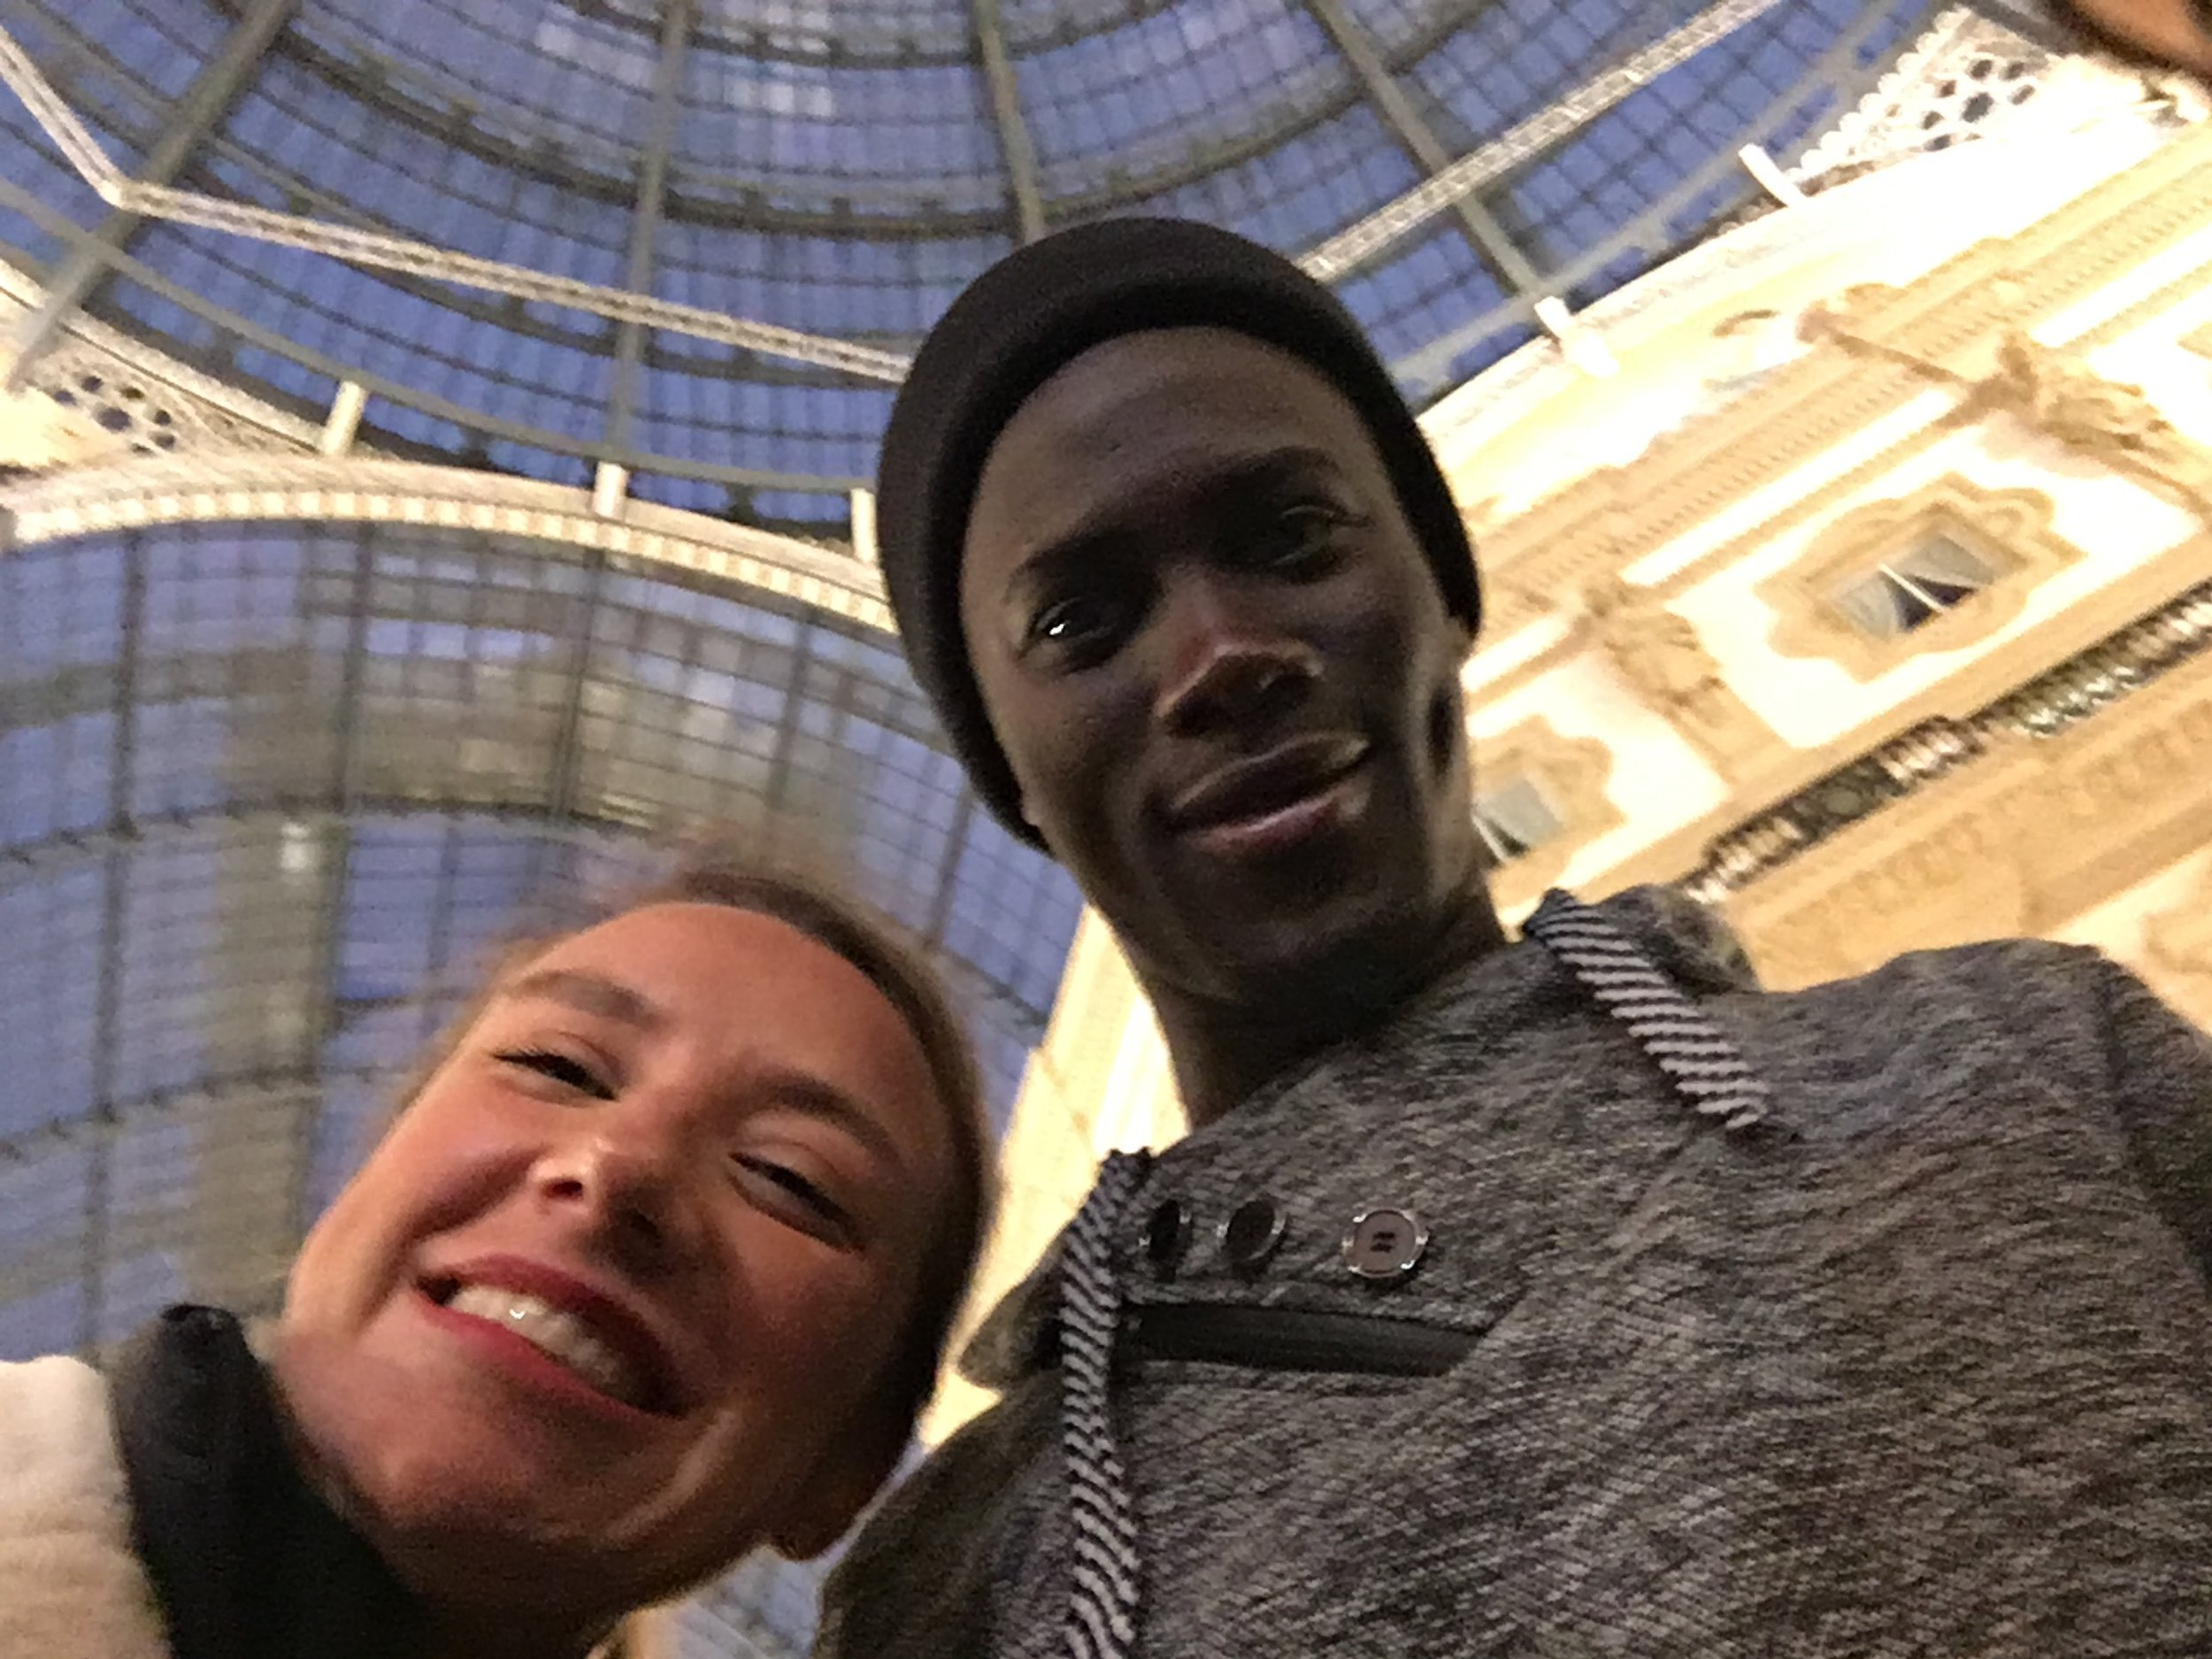 Selfie with the author, in Milan, November 2017. Milan, Italy. © Pamela Kerpius